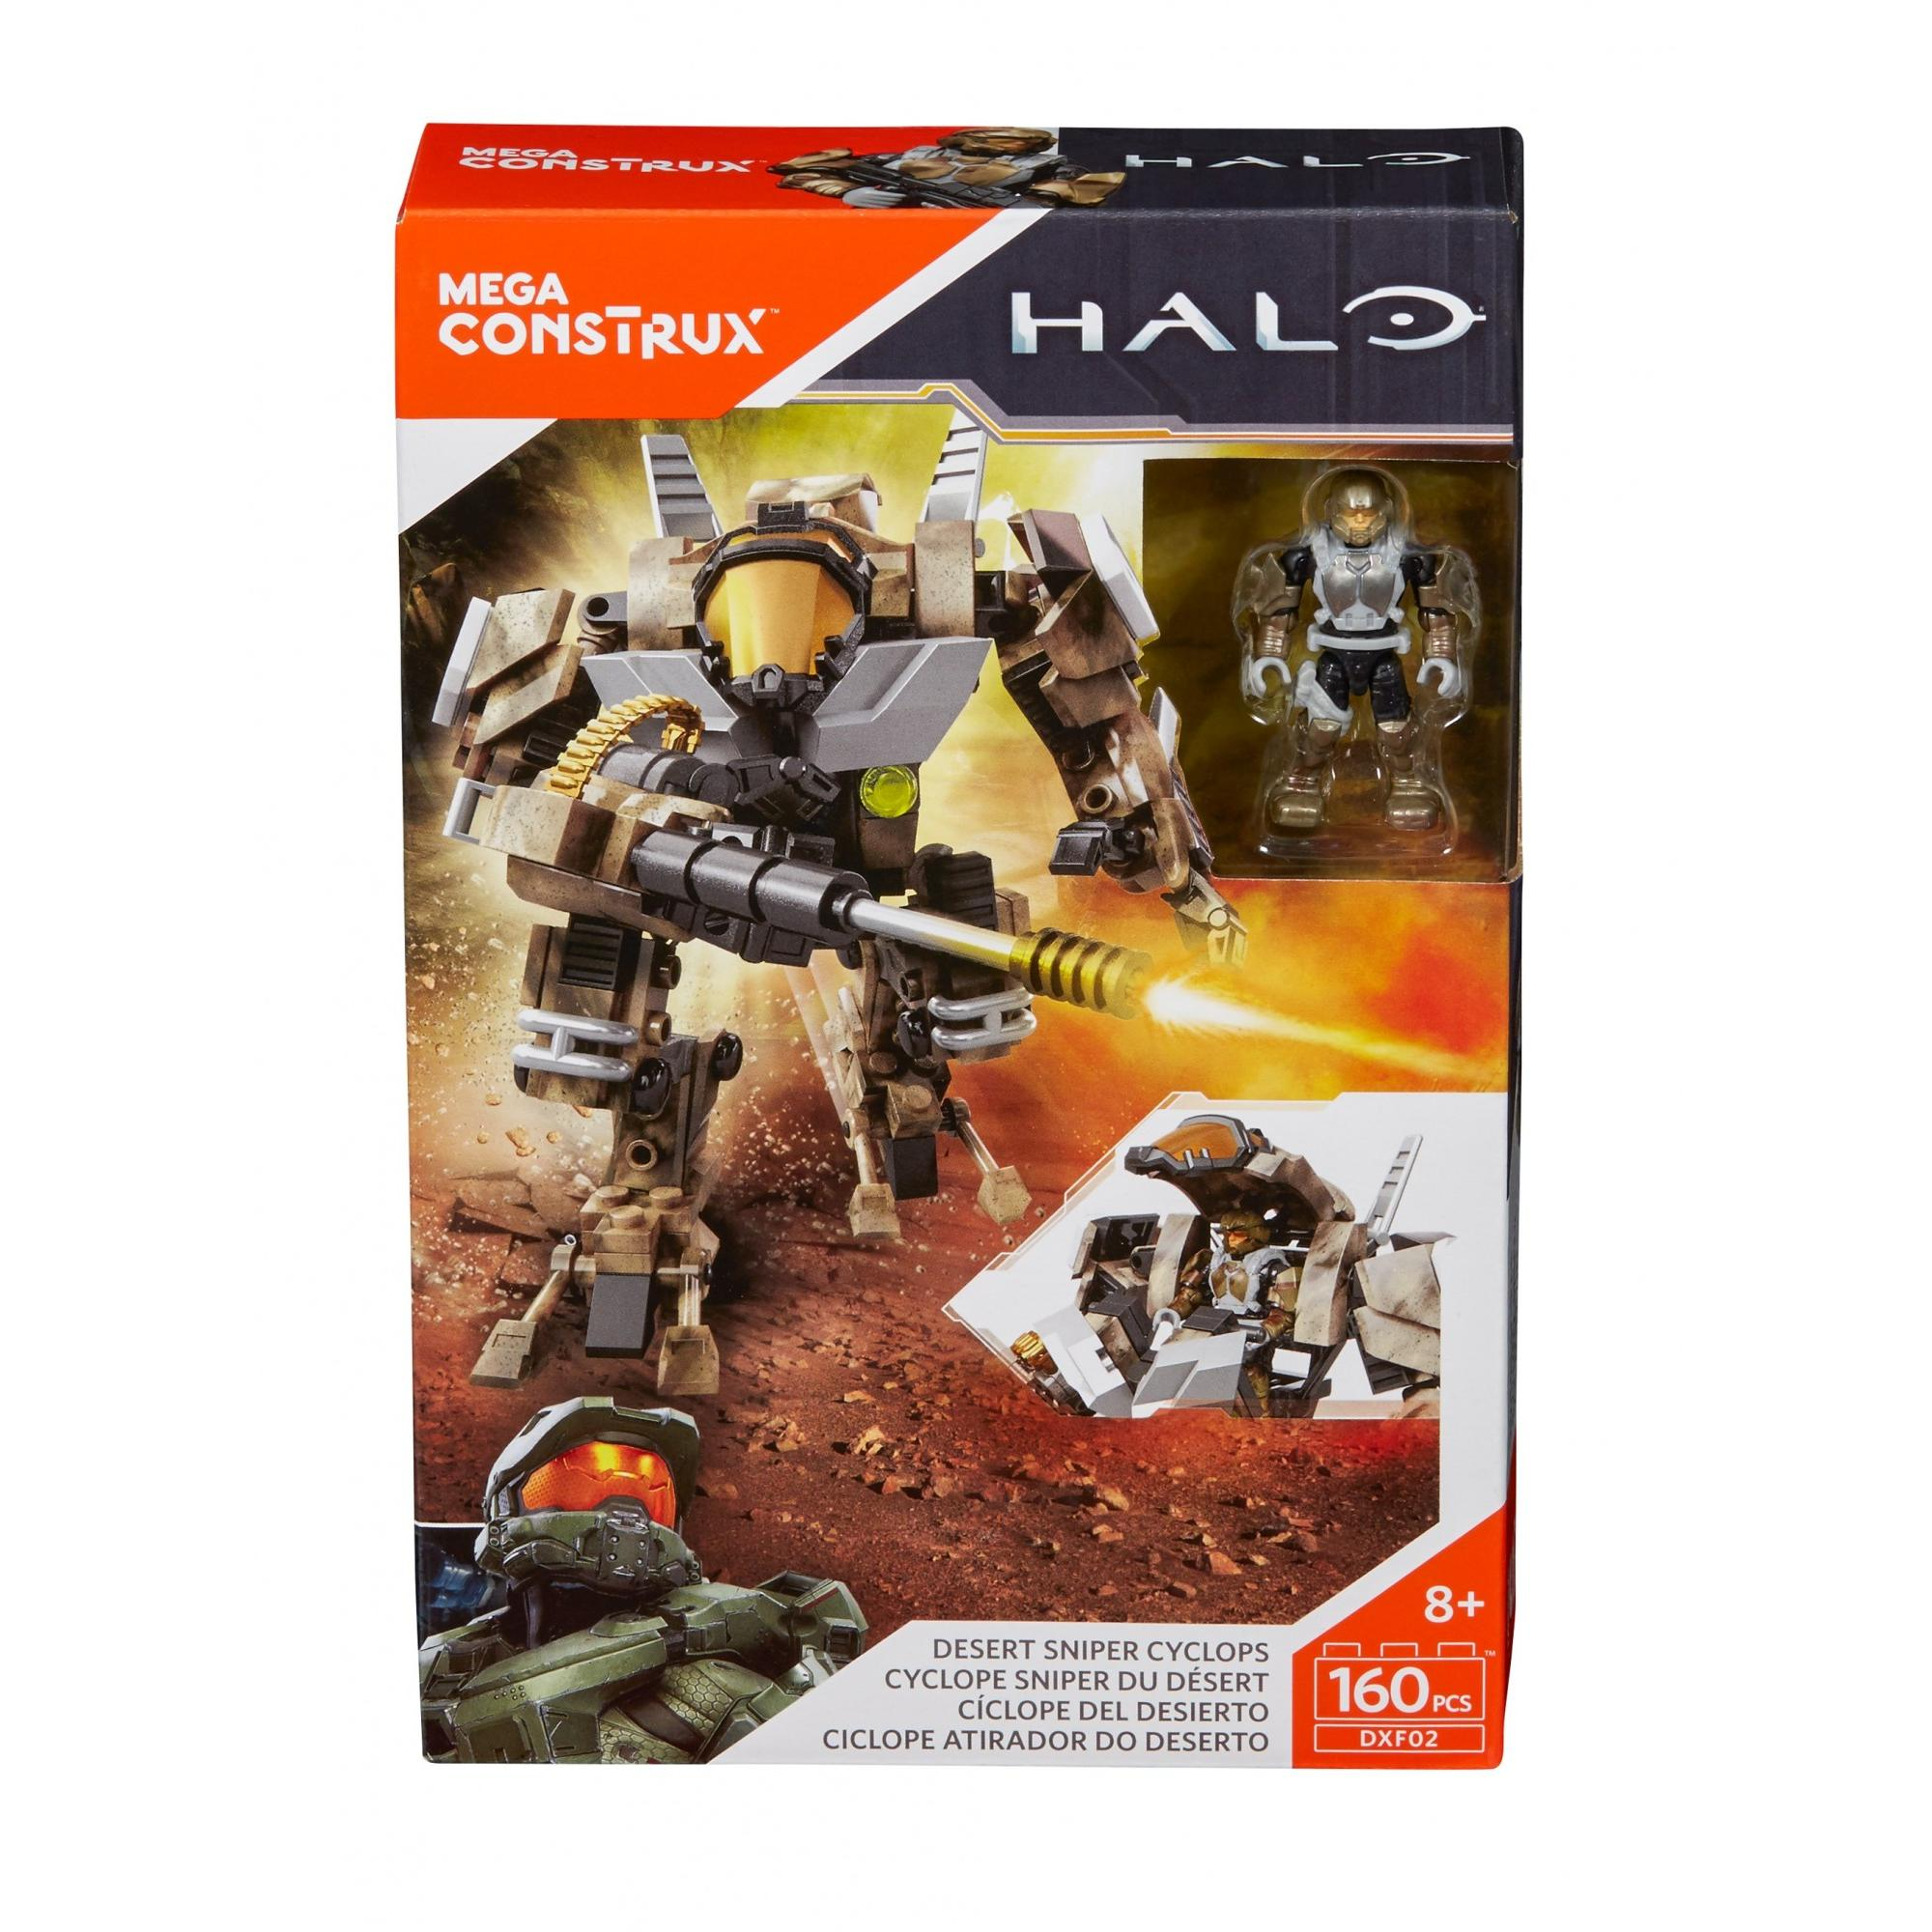 Mega Construx Halo Cyclops Evolved Assortment